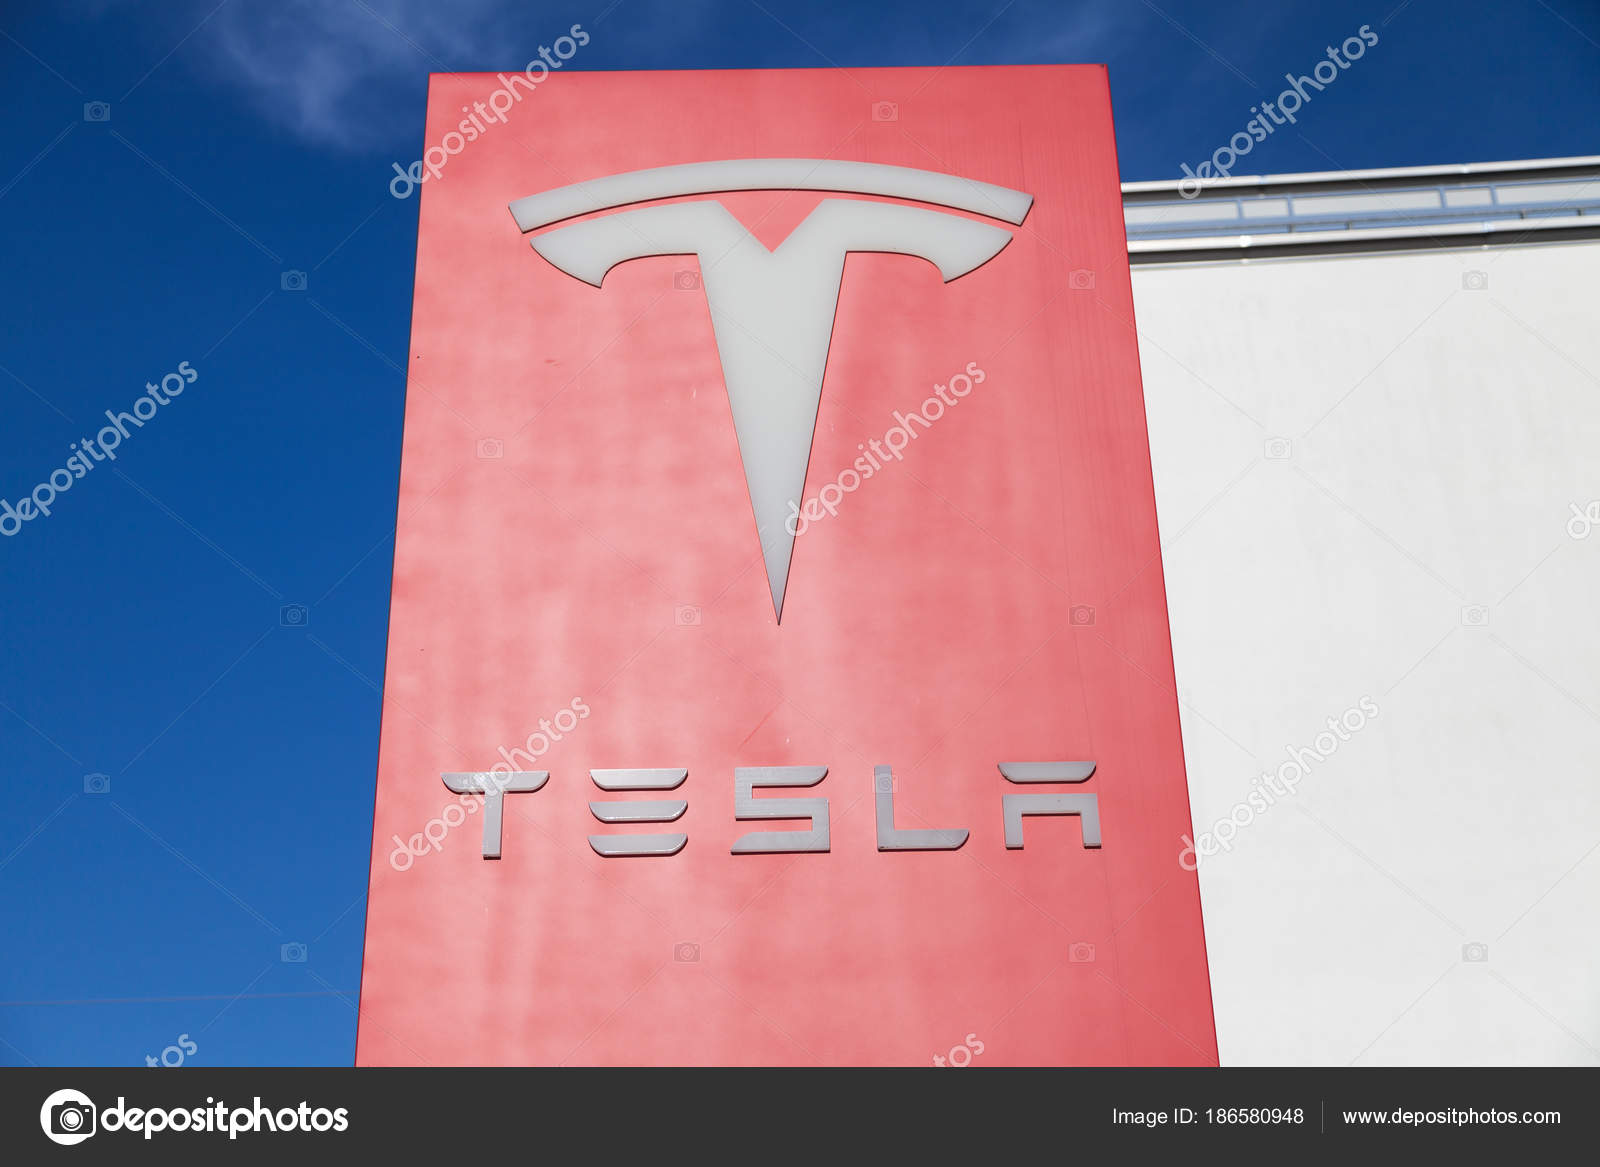 Fuerth germany march 2018 tesla logo car dealer tesla inc stock fuerth germany march 2018 tesla logo car dealer tesla inc stock photo buycottarizona Gallery